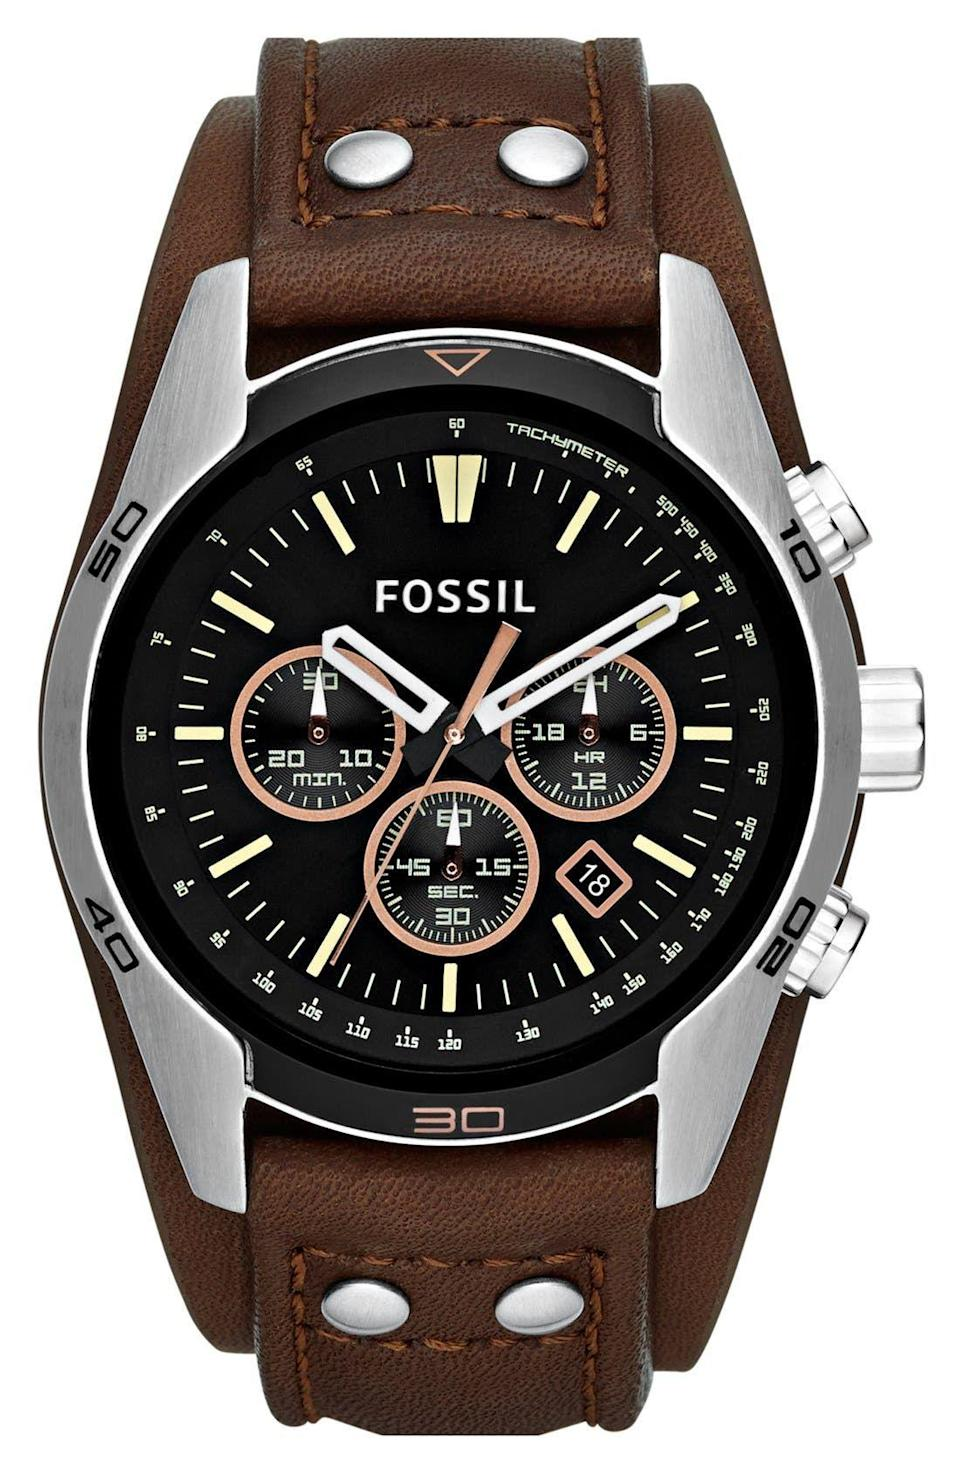 """<p><strong>FOSSIL</strong></p><p>nordstrom.com</p><p><strong>$94.50</strong></p><p><a href=""""https://go.redirectingat.com?id=74968X1596630&url=https%3A%2F%2Fwww.nordstrom.com%2Fs%2Ffossil-sport-chronograph-leather-cuff-watch-44mm%2F3553217&sref=https%3A%2F%2Fwww.esquire.com%2Fstyle%2Fg36535194%2Fnordstrom-mens-sale-half-yearly-spring-2021%2F"""" rel=""""nofollow noopener"""" target=""""_blank"""" data-ylk=""""slk:Shop Now"""" class=""""link rapid-noclick-resp"""">Shop Now</a></p><p>It even <em>looks</em> fast.</p>"""